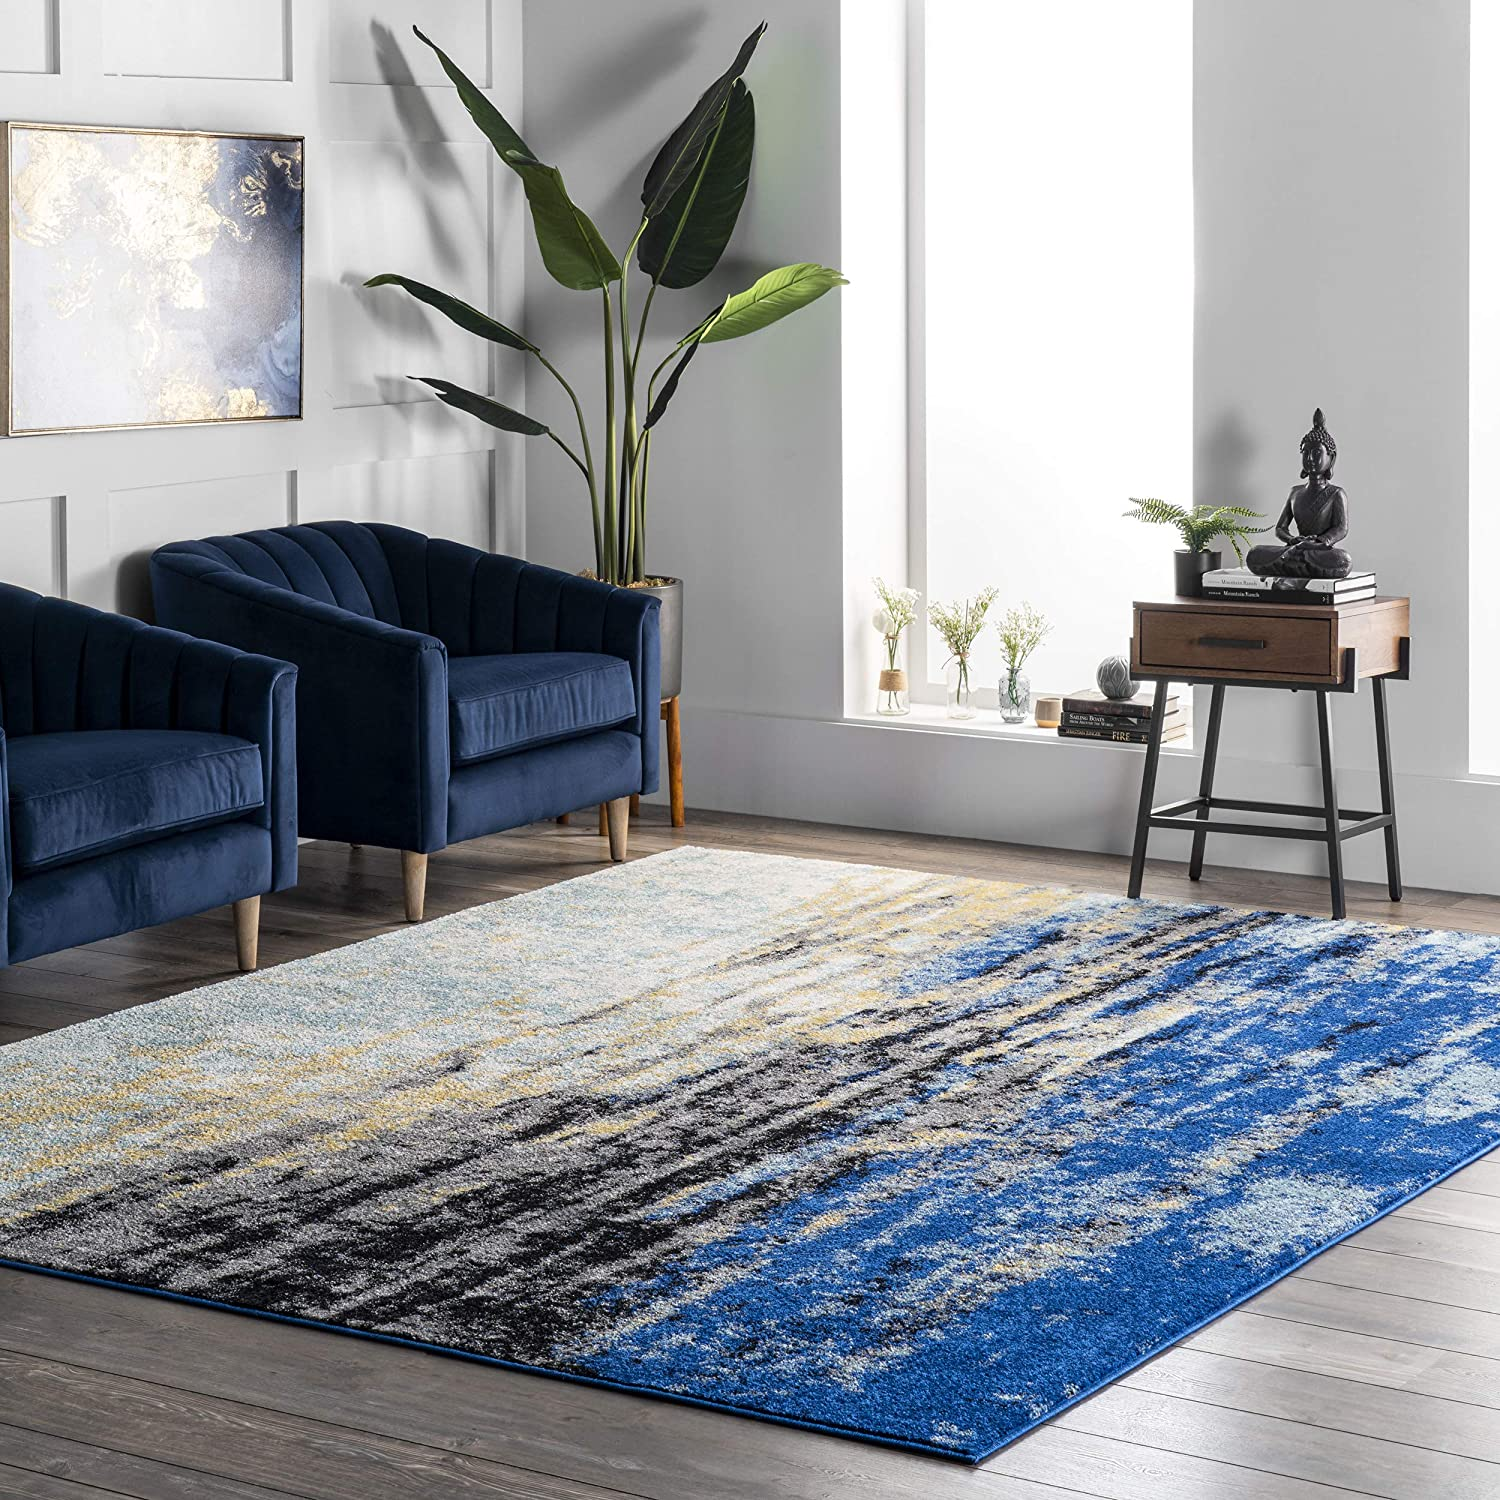 Amazon Com Nuloom Waterfall Vintage Abstract Area Rug 4 X 6 Blue Furniture Decor